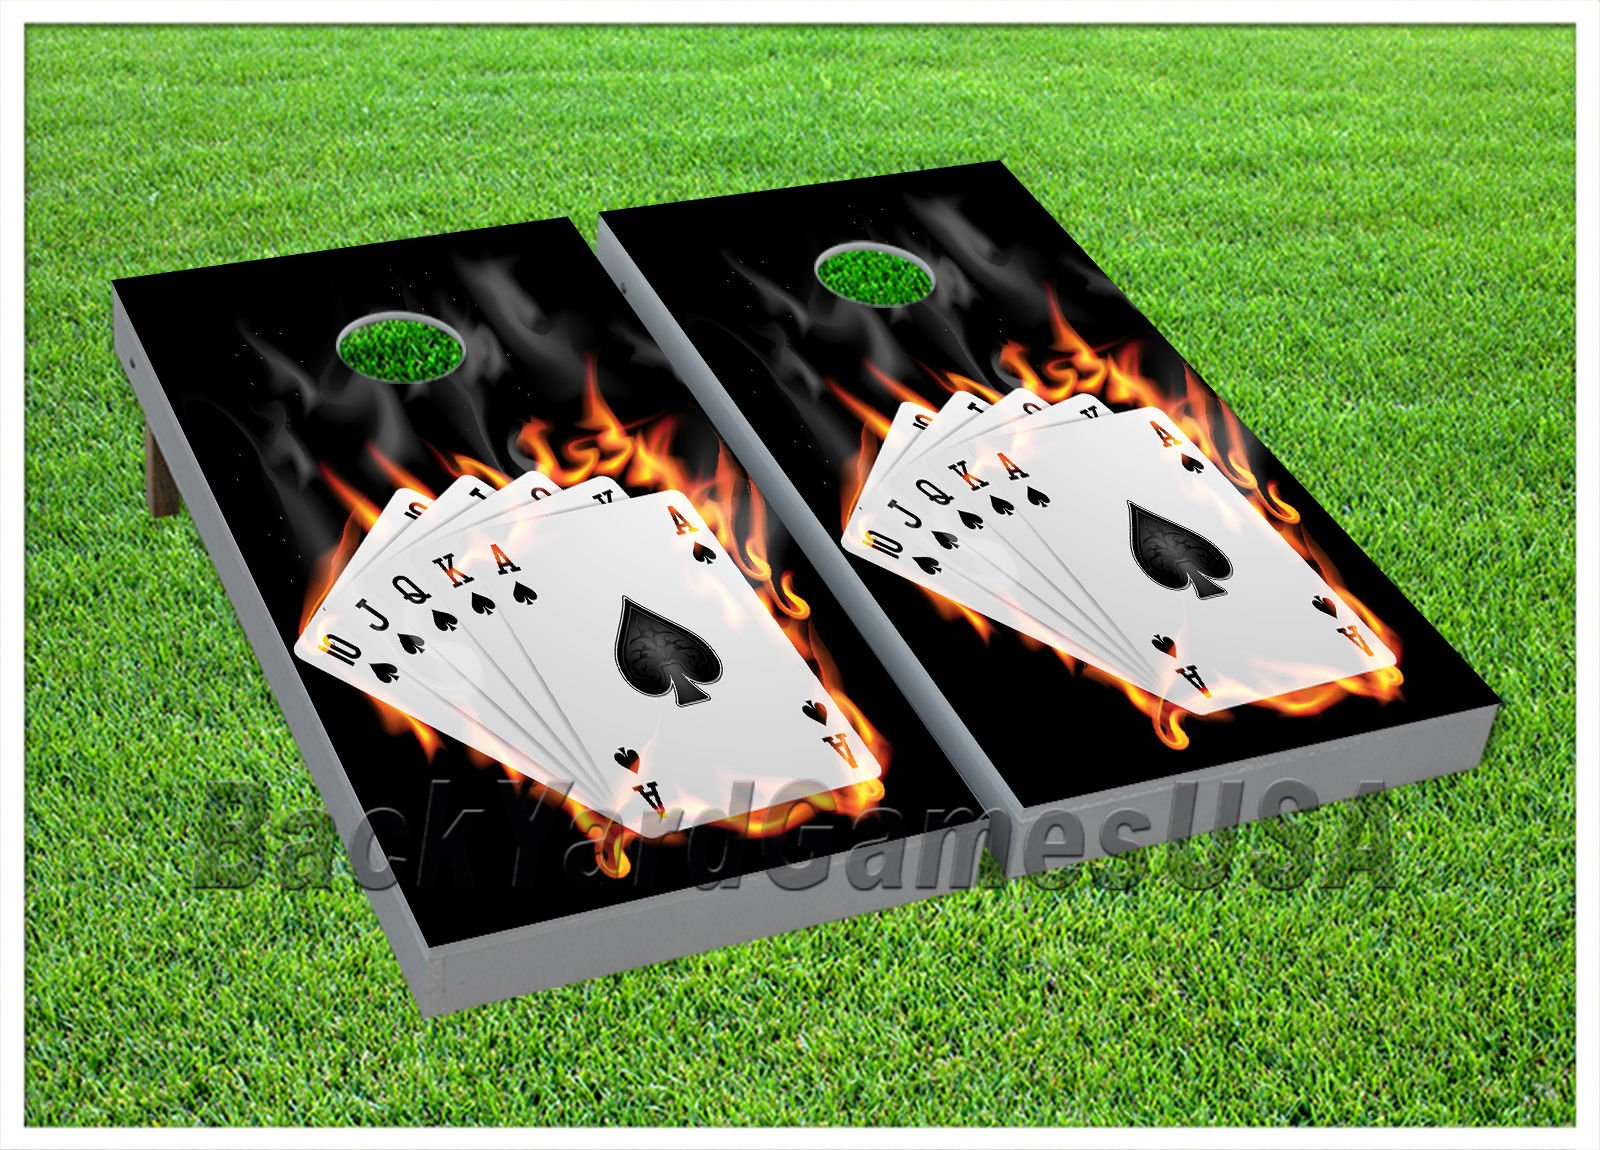 CORNHOLE BEANBAG TOSS GAME w Bags Game Royal Flush Casino Cards Boards Set 901 by BackYardGamesUSA